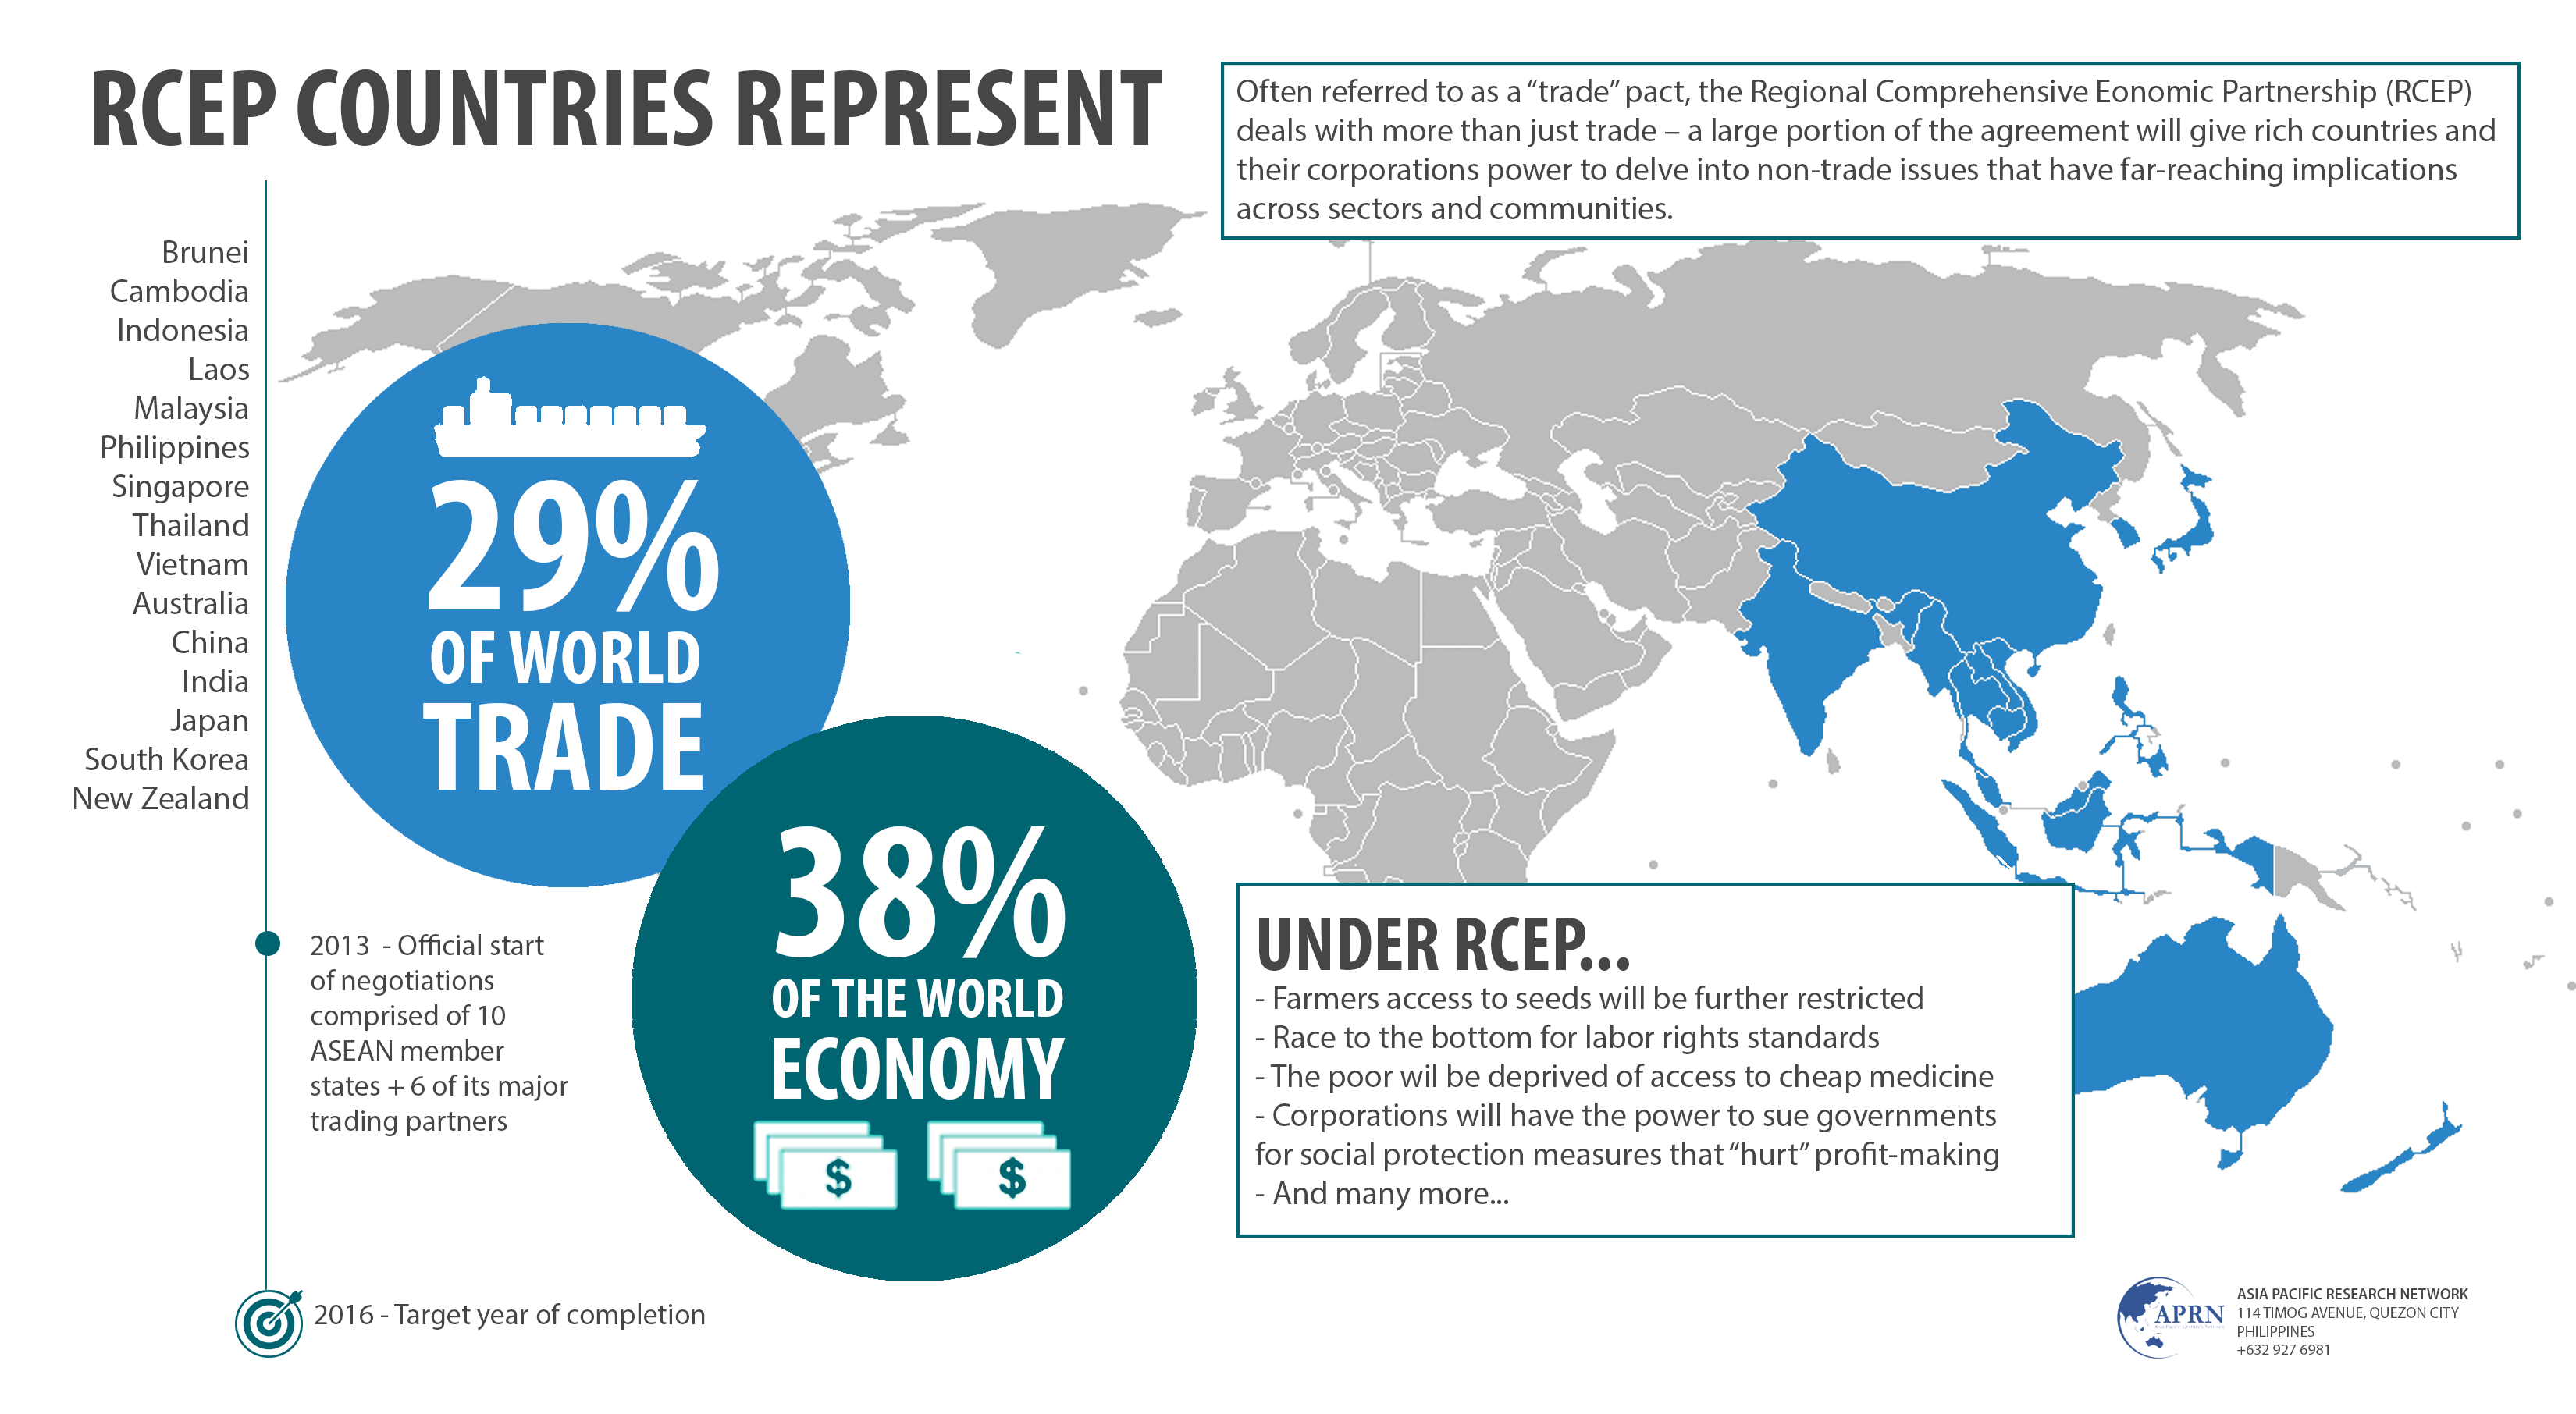 APRN Briefer on the Regional Comprehensive Economic Partnership (RCEP)